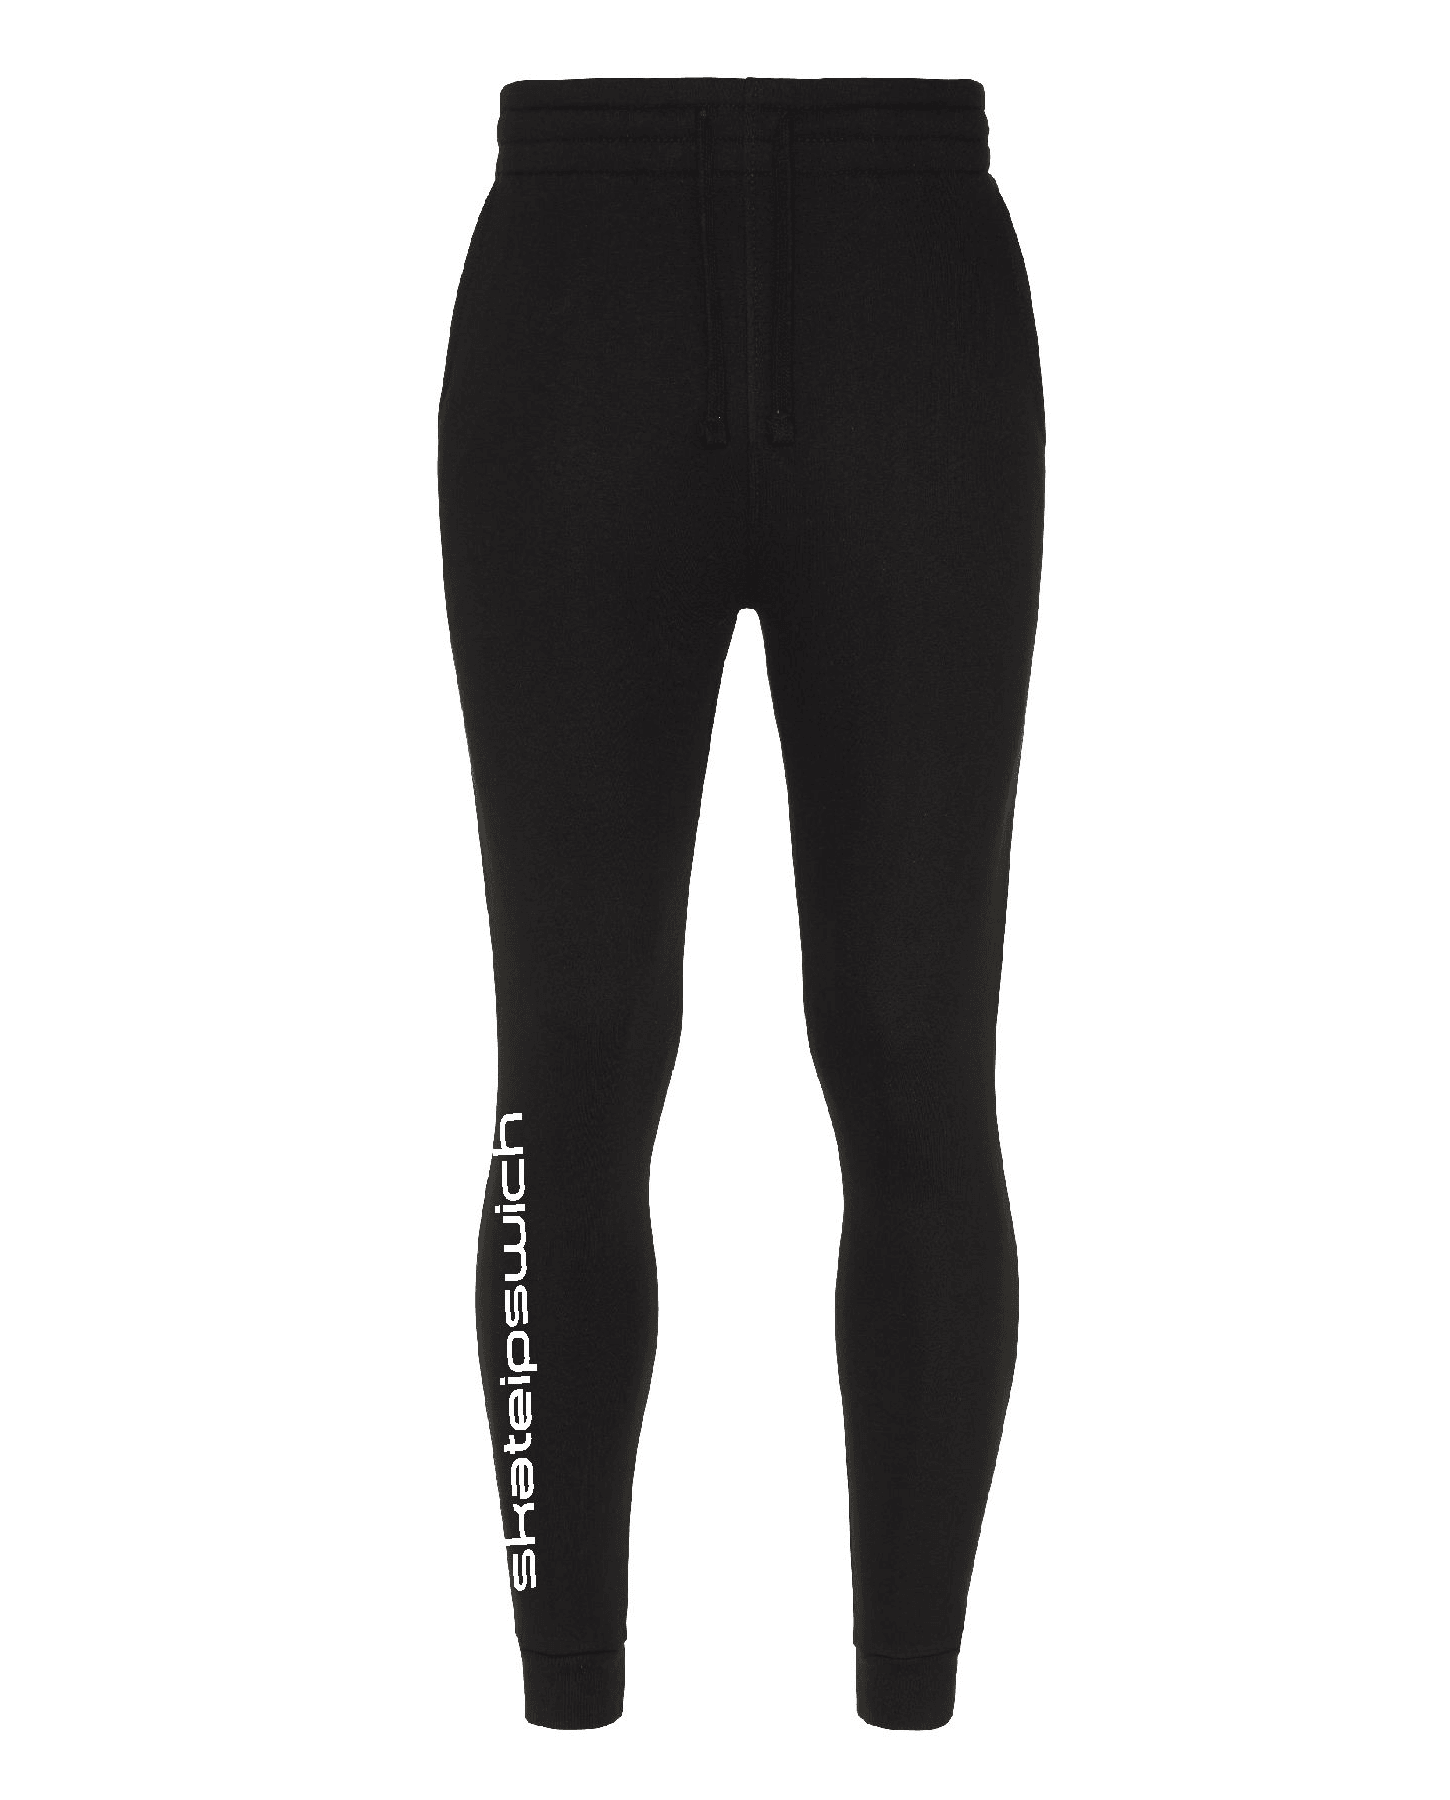 ISC – Tapered Track Pant (Unisex)